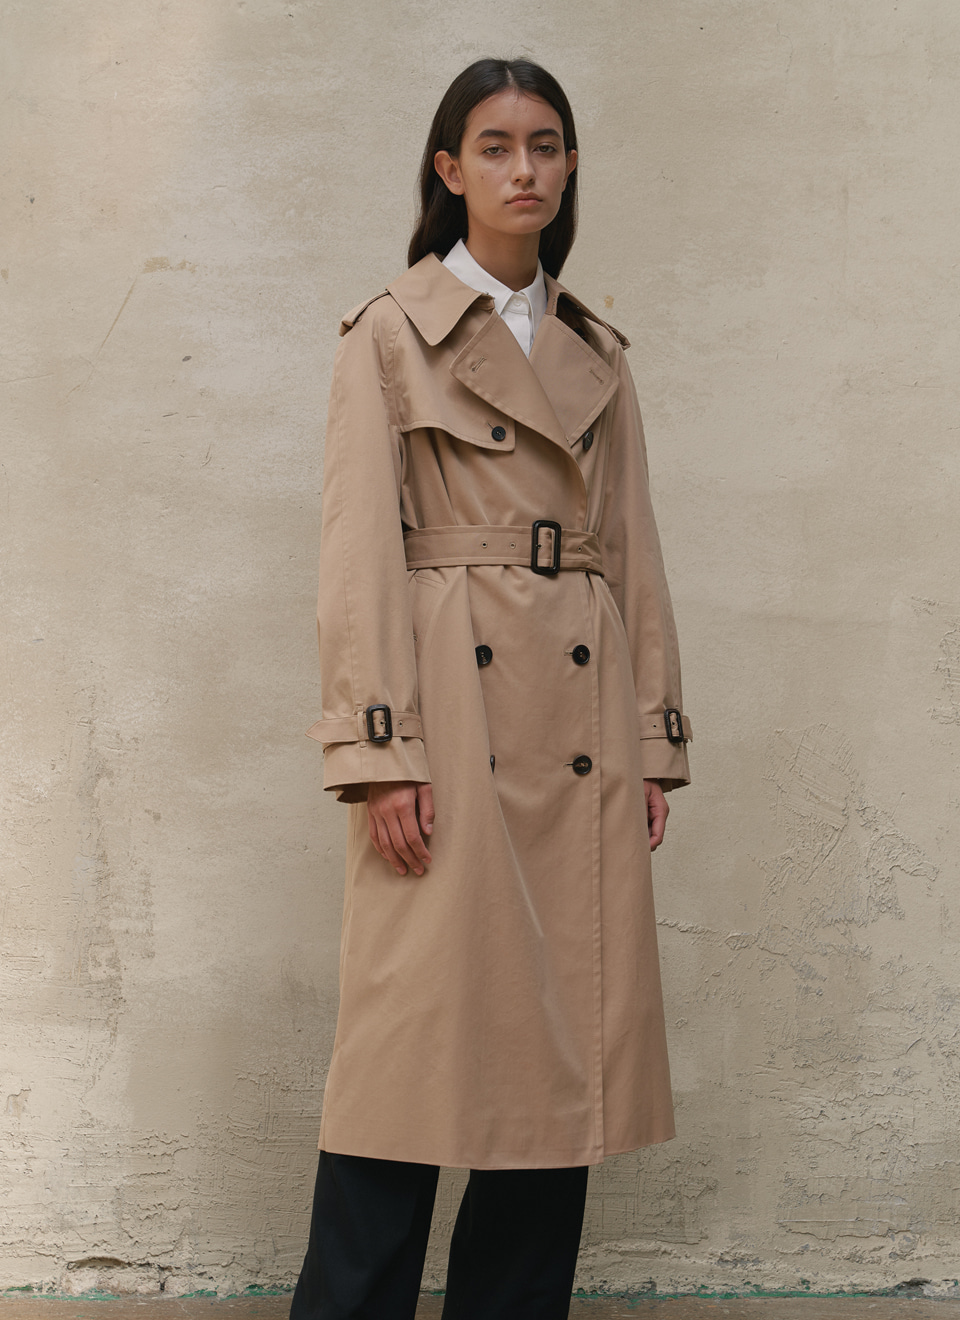 20 A/W LONG TRENCH COAT SAND BEIGE